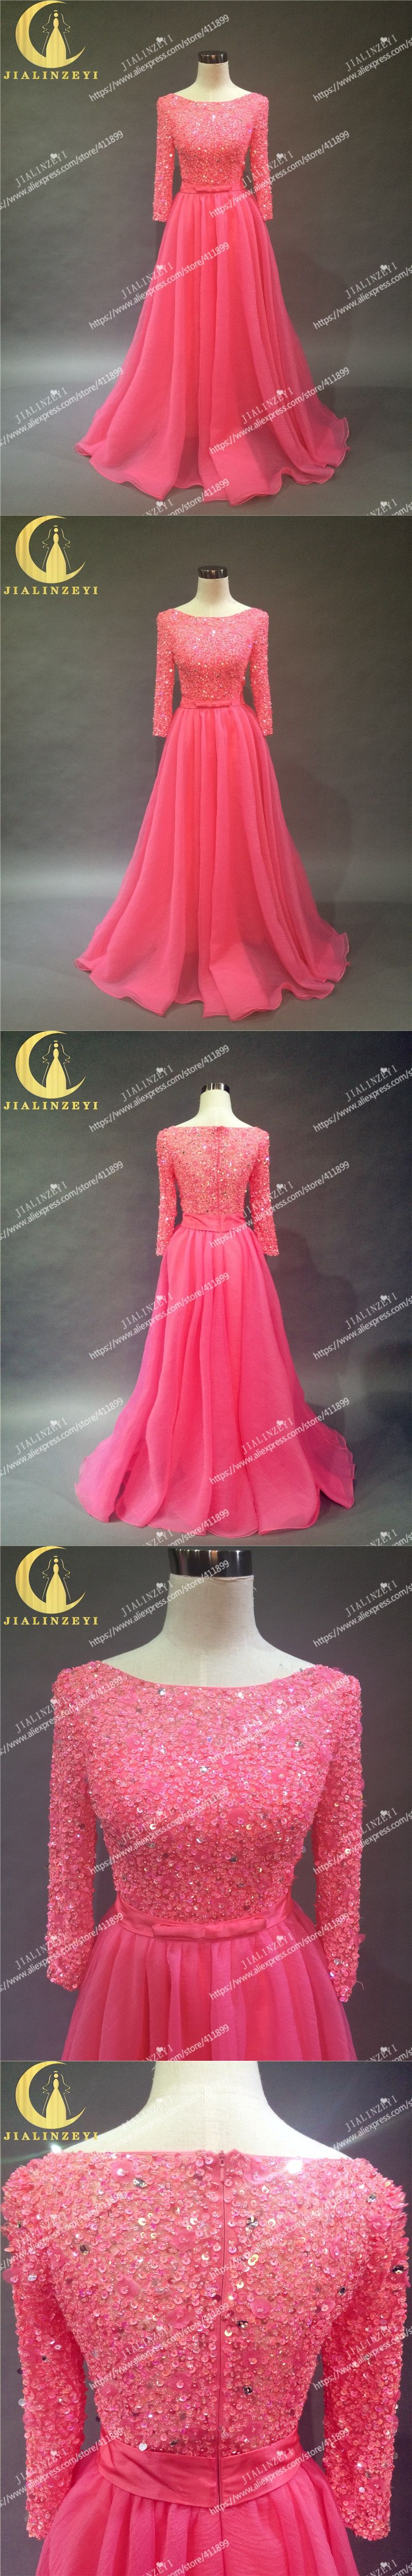 959defef765 Formal · Rhine Real Sample Image Long Sleeves watermelon red Full Hand  Beads A-line Floor Length